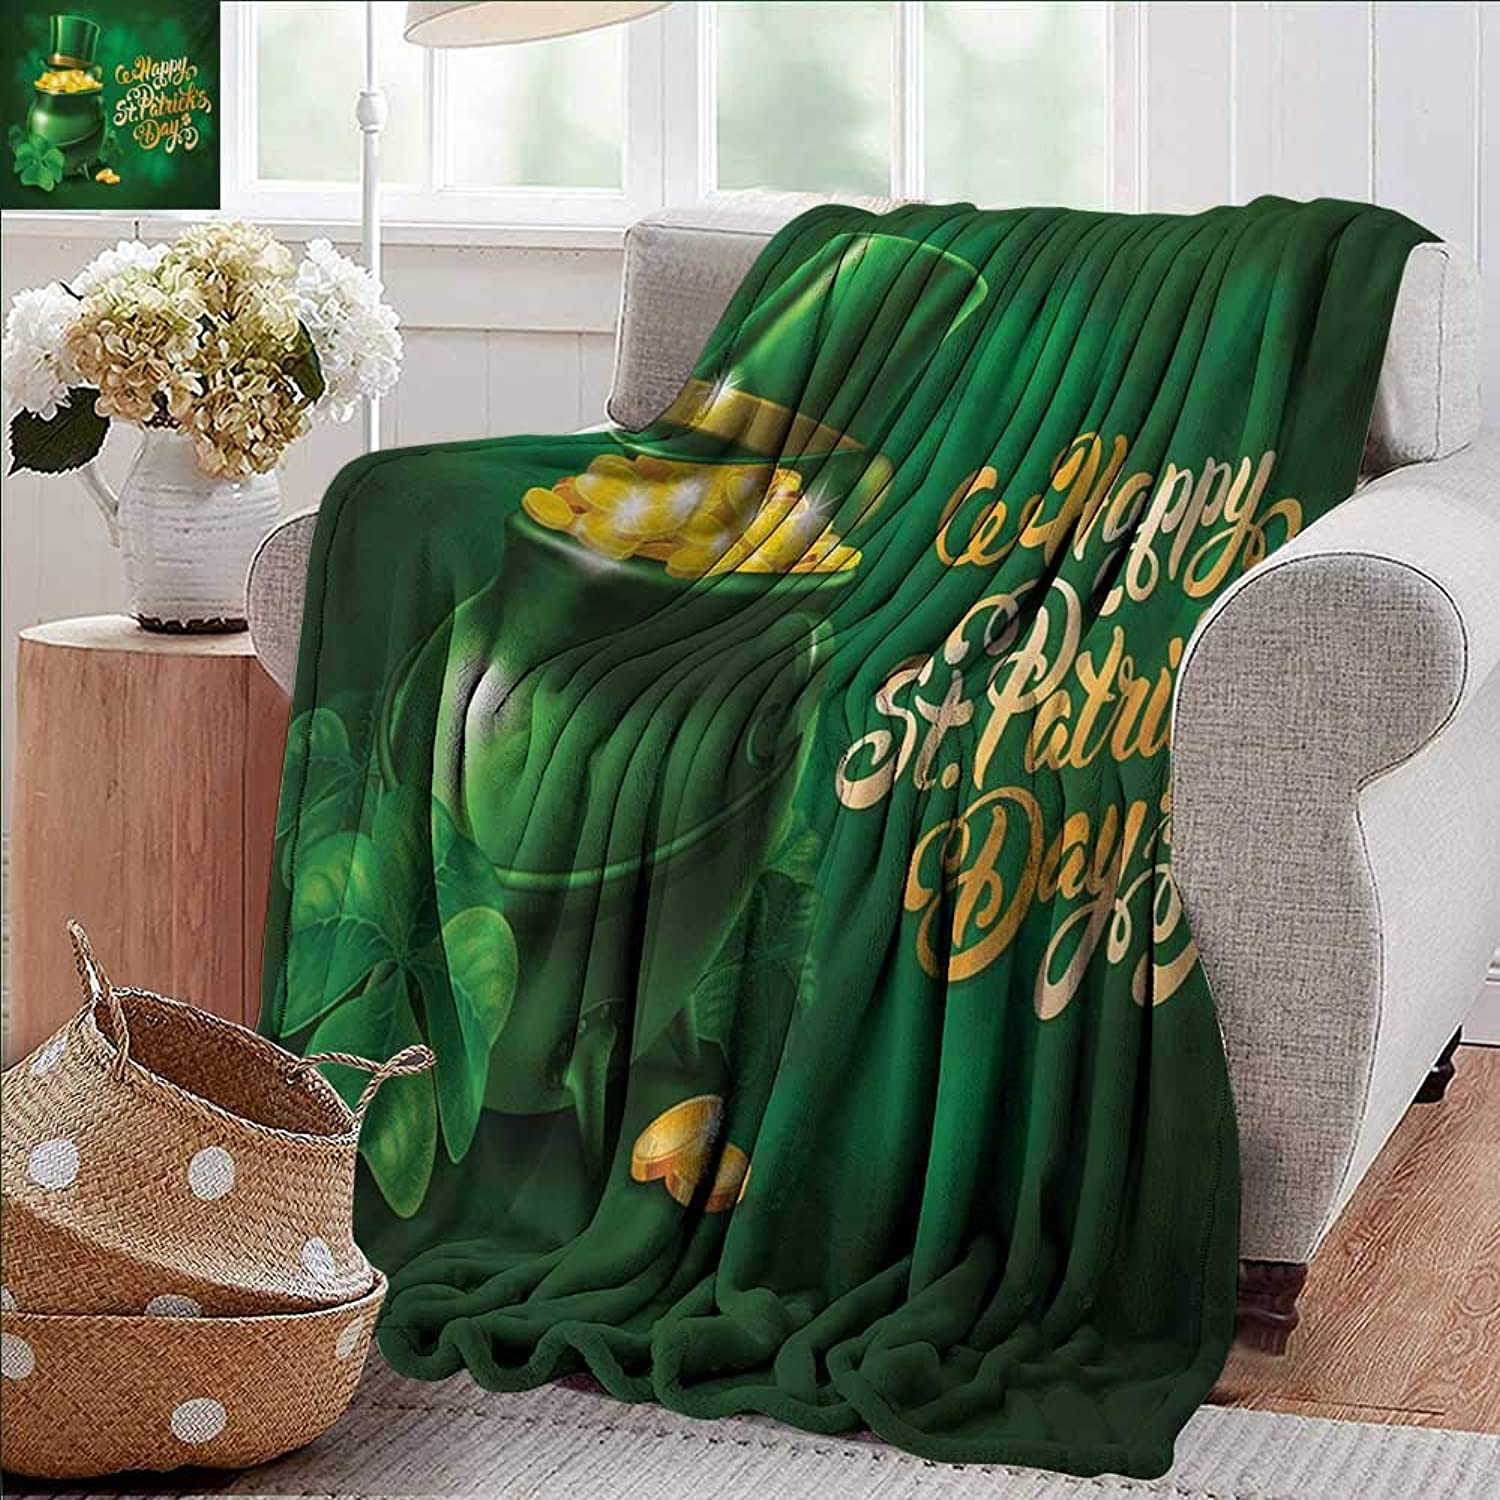 Weighted Blanket for Kids,St. Patricks Day,Large Pot of gold Leprechaun Hat and Shamrocks Greetings 17th March,gold and Emerald,Weighted Blanket for Adults Kids, Better Deeper Sleep 50 x60